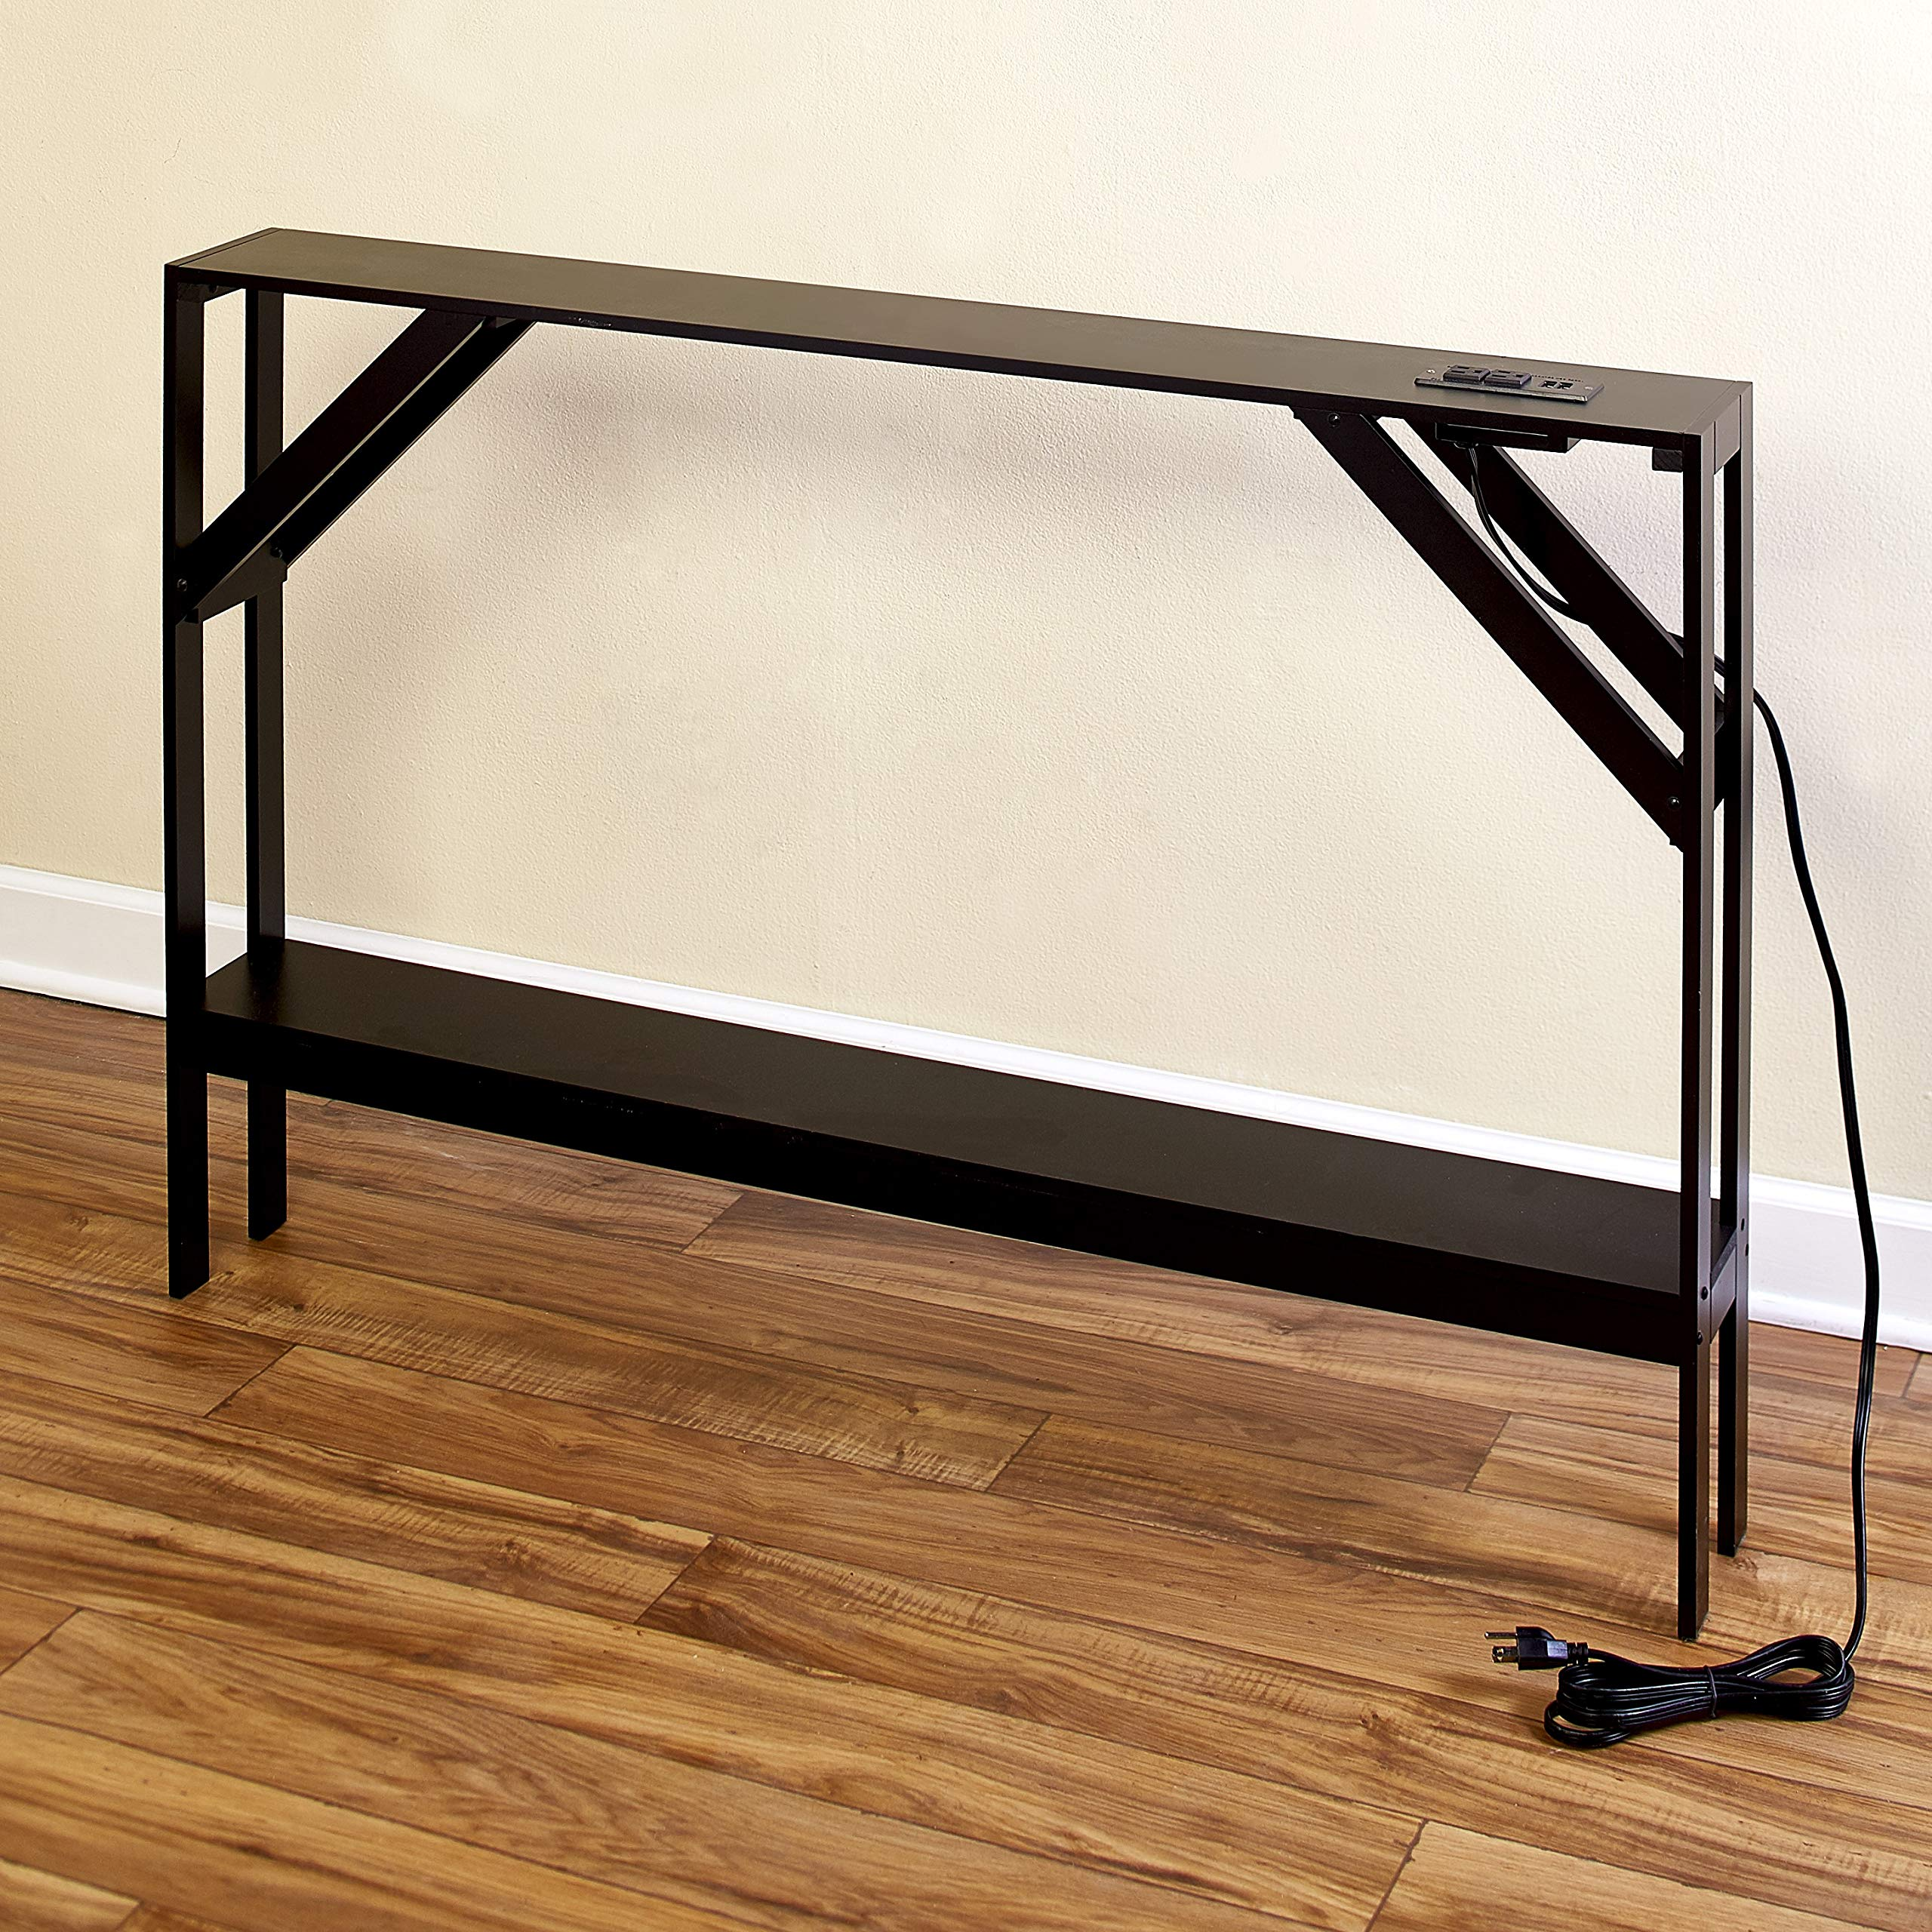 Skinny Sofa Table with Outlet - Modern Accent Table with Black Finish by The Lakeside Collection